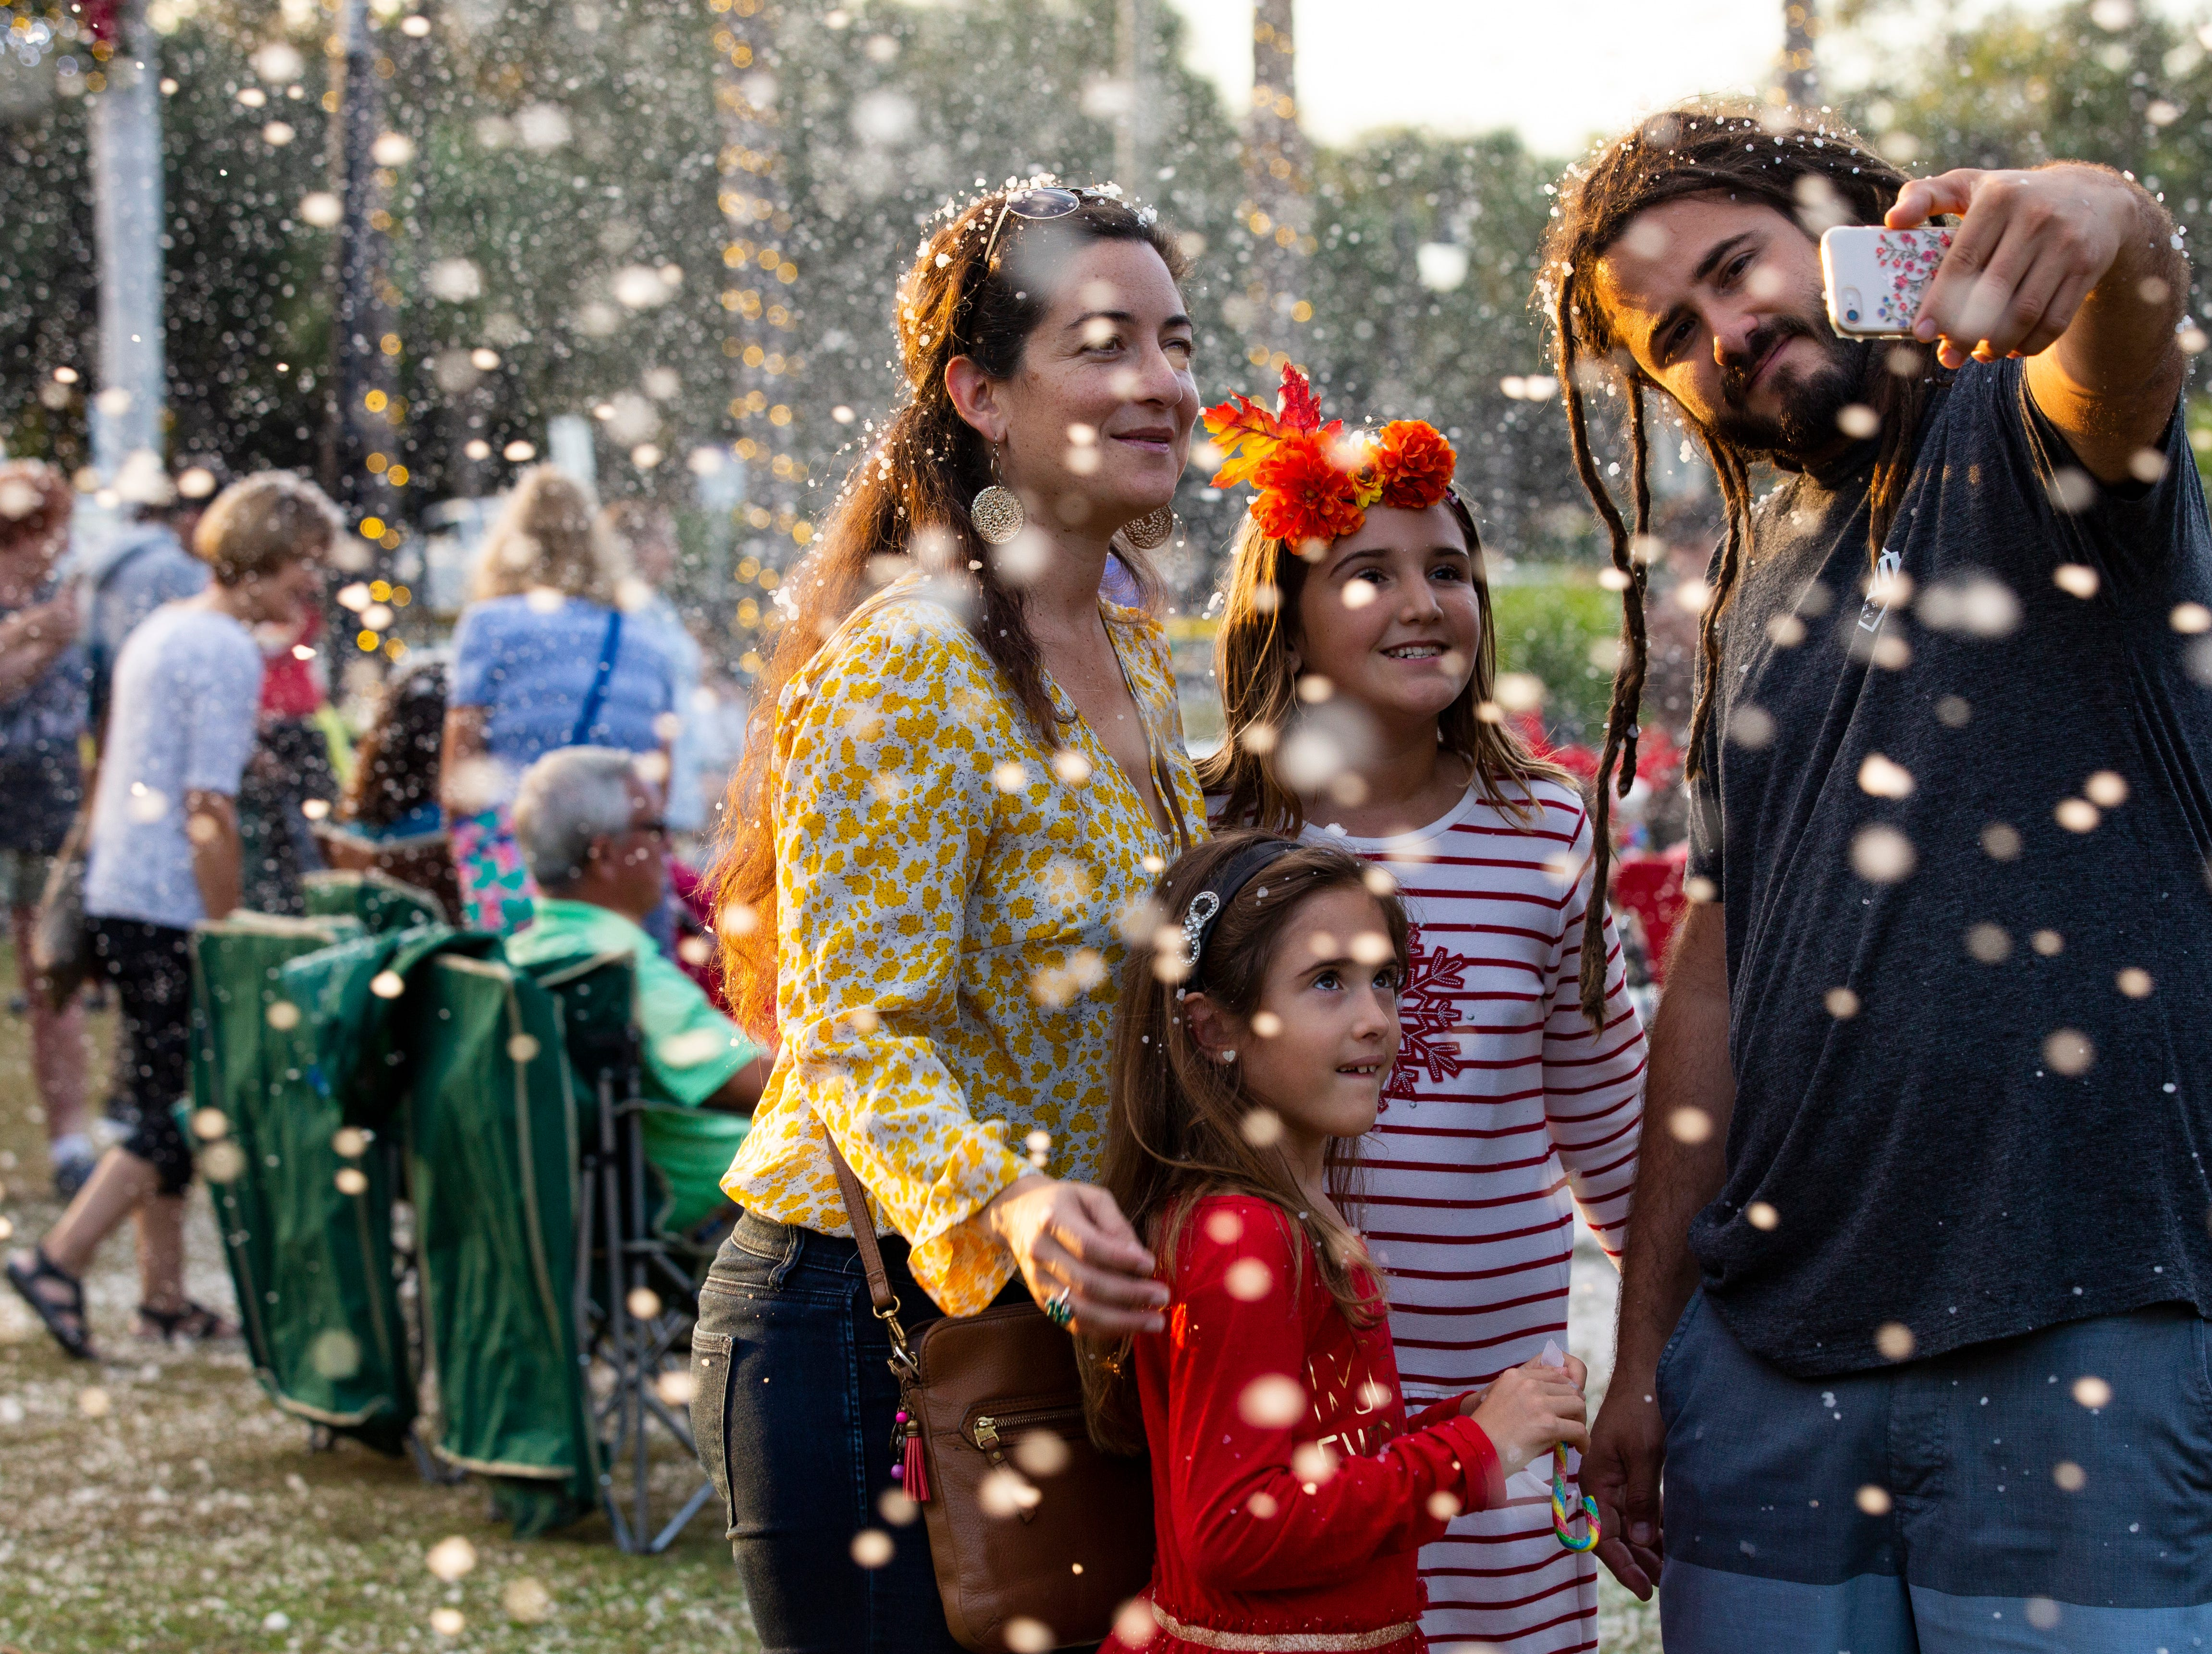 The Martinez family from Fort Myers poses for a selfie in the faux blizzard during the 19th annual Holiday in the Park on Dec. 4, 2018 at the Riverside Park in Bonita Springs.